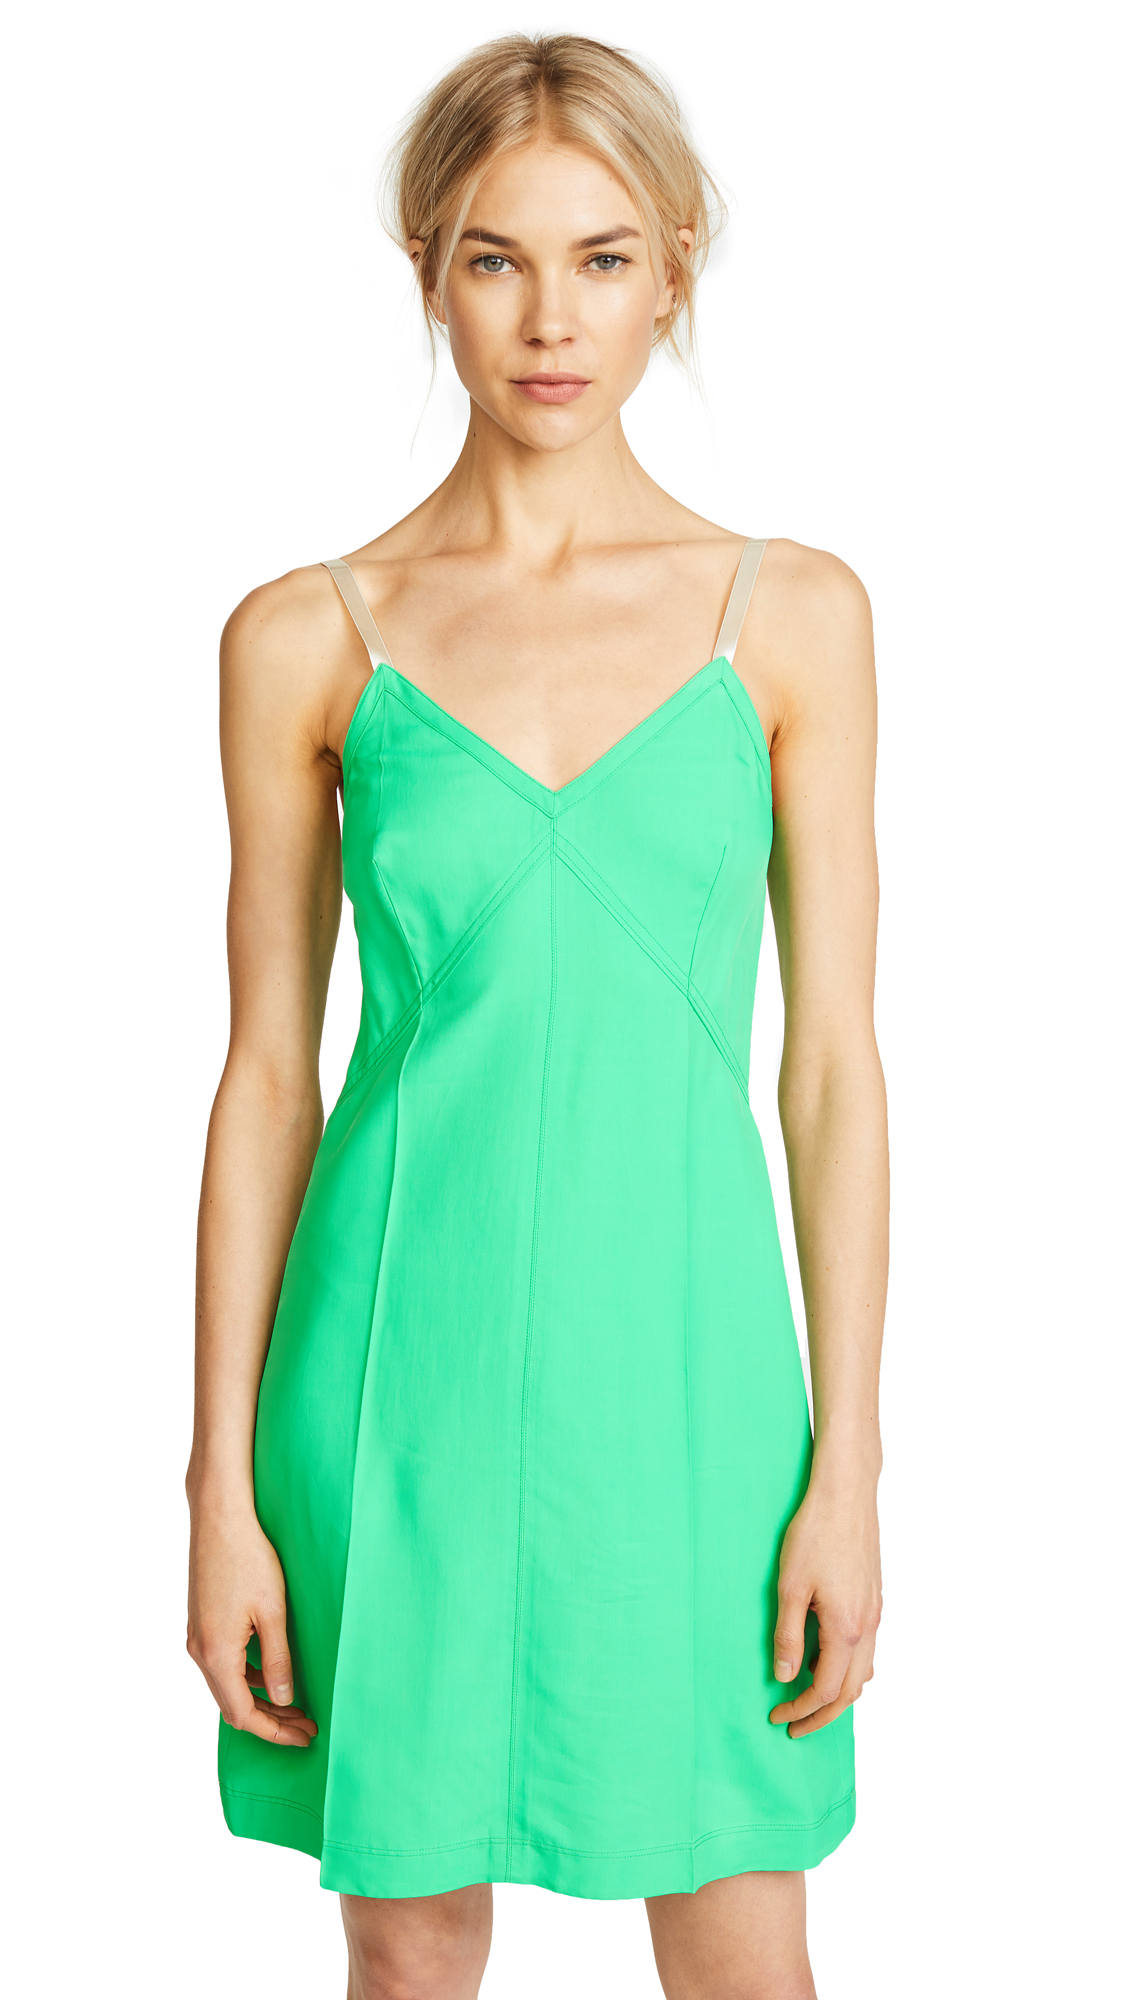 Helmut Lang Mini Slip Dress - Frog